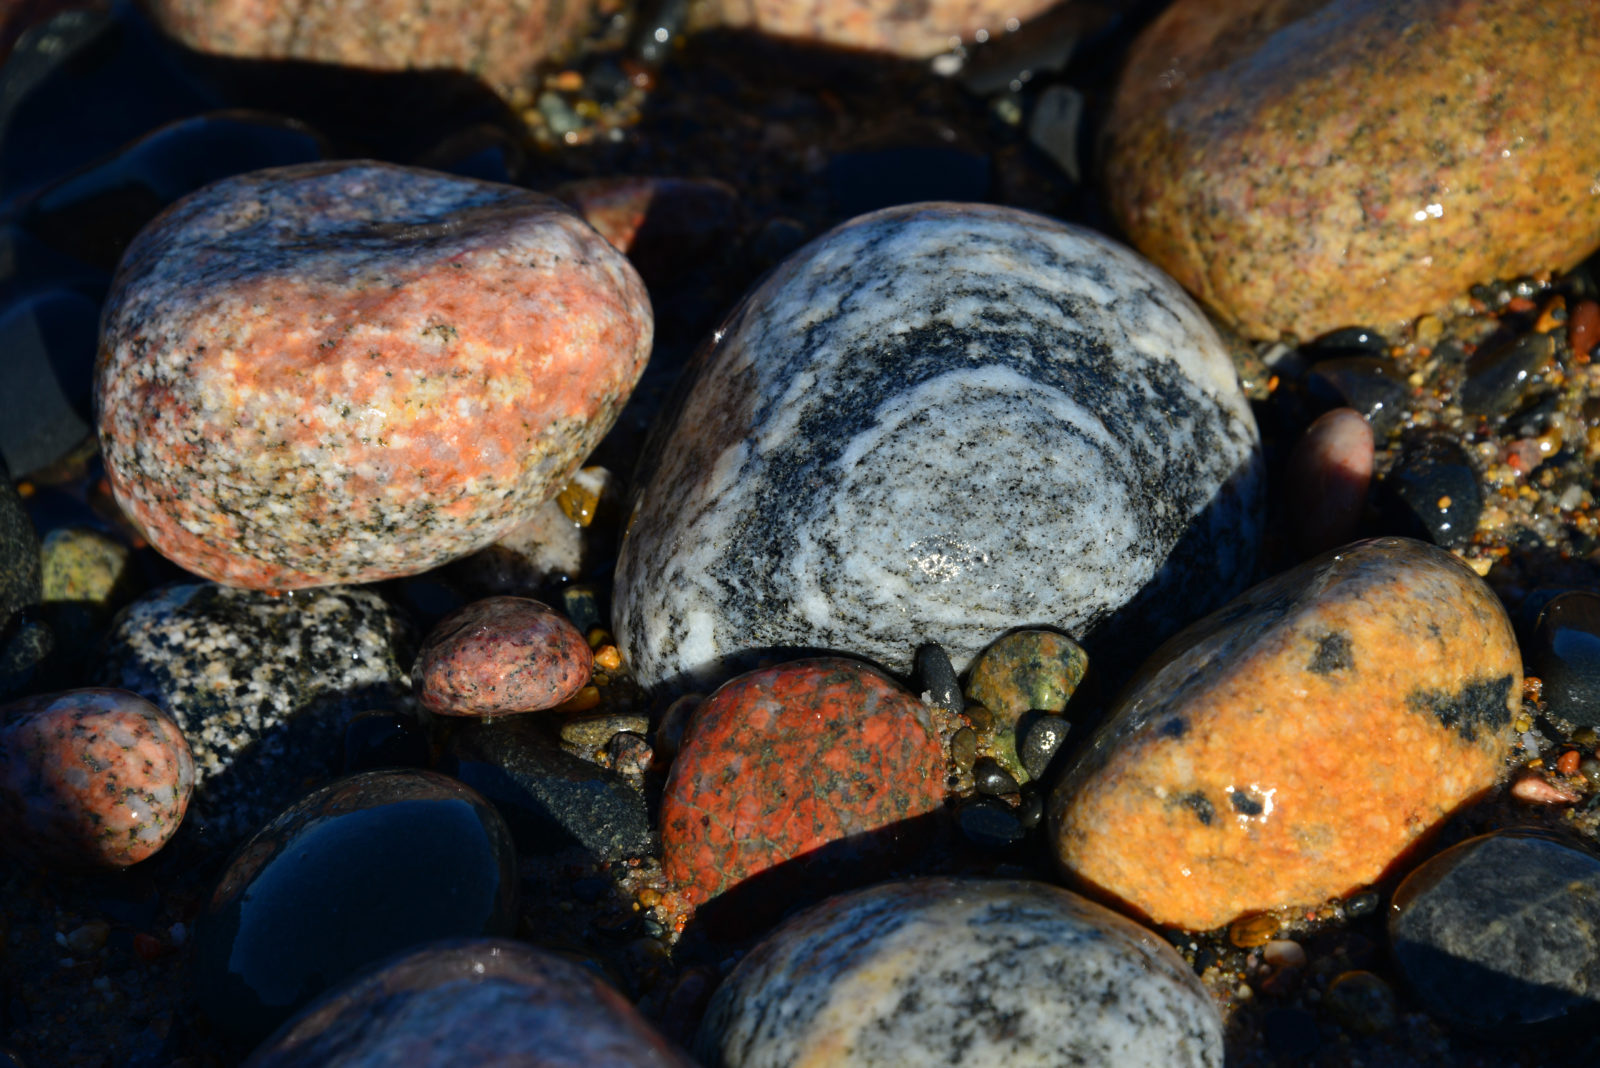 Shore Rocks, Agate Beach, Lake Superior Michigan